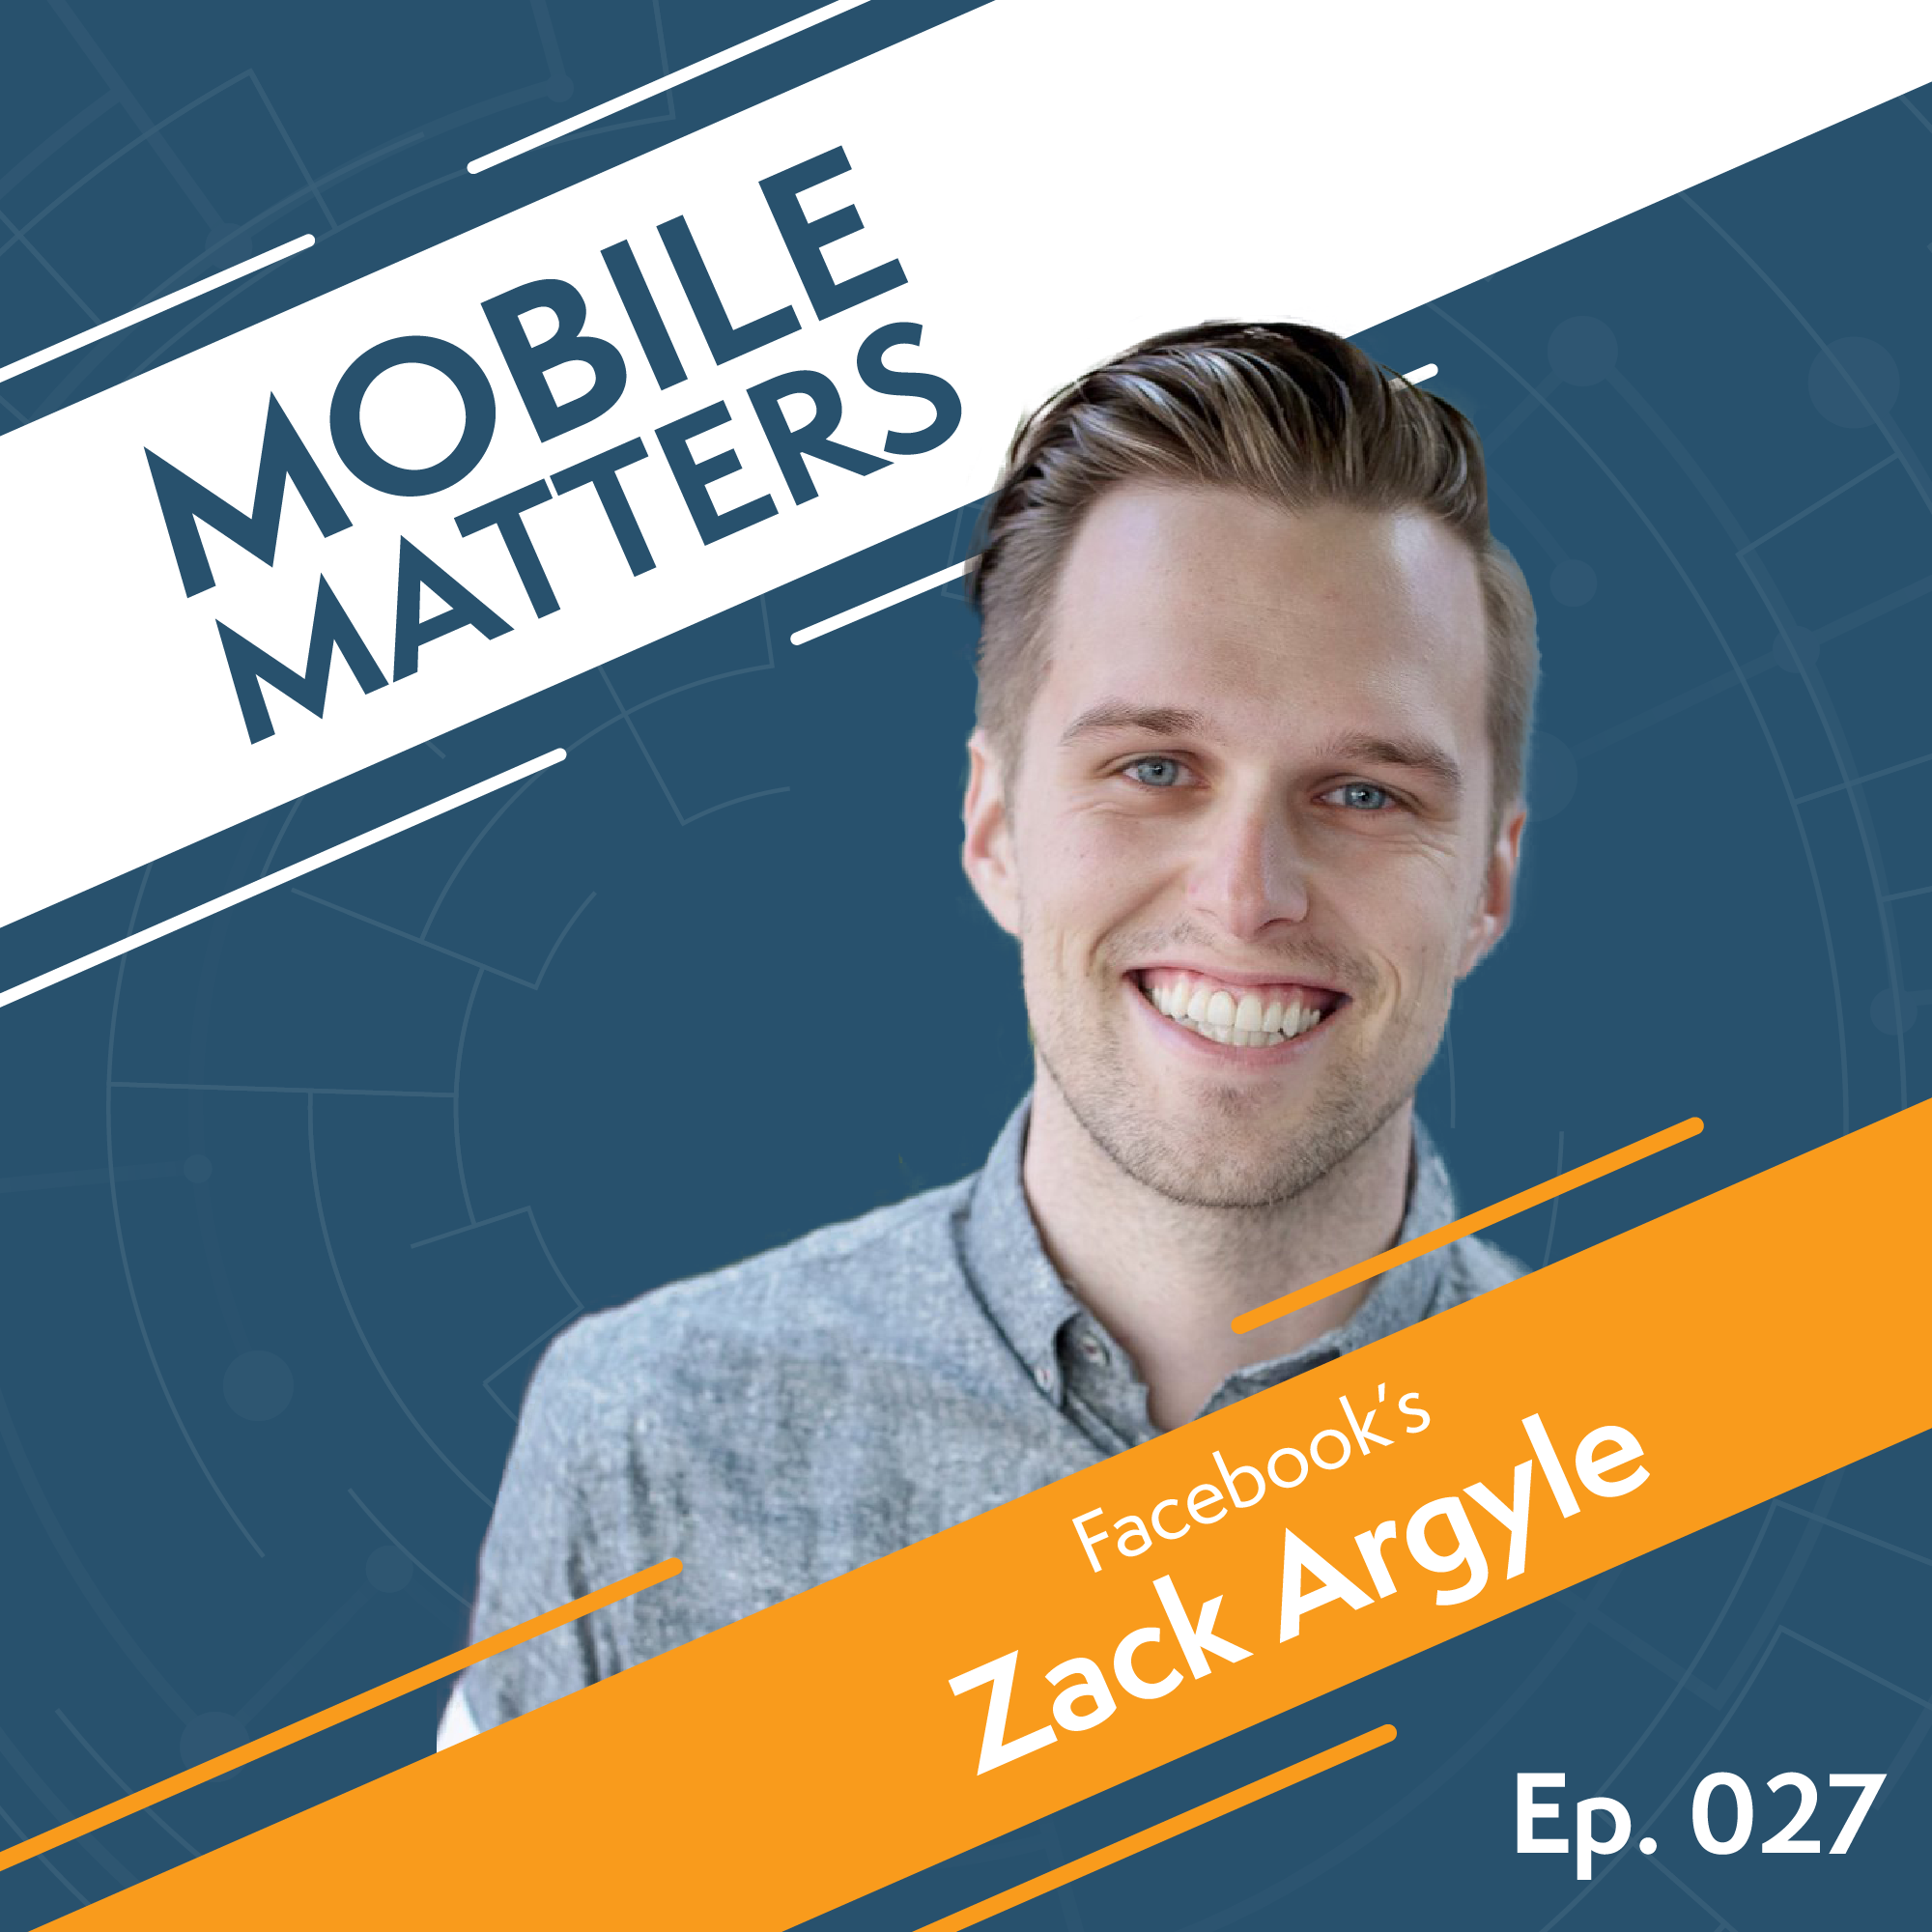 027: Zack Argyle   An Insider's Look at Building the Pinterest PWA